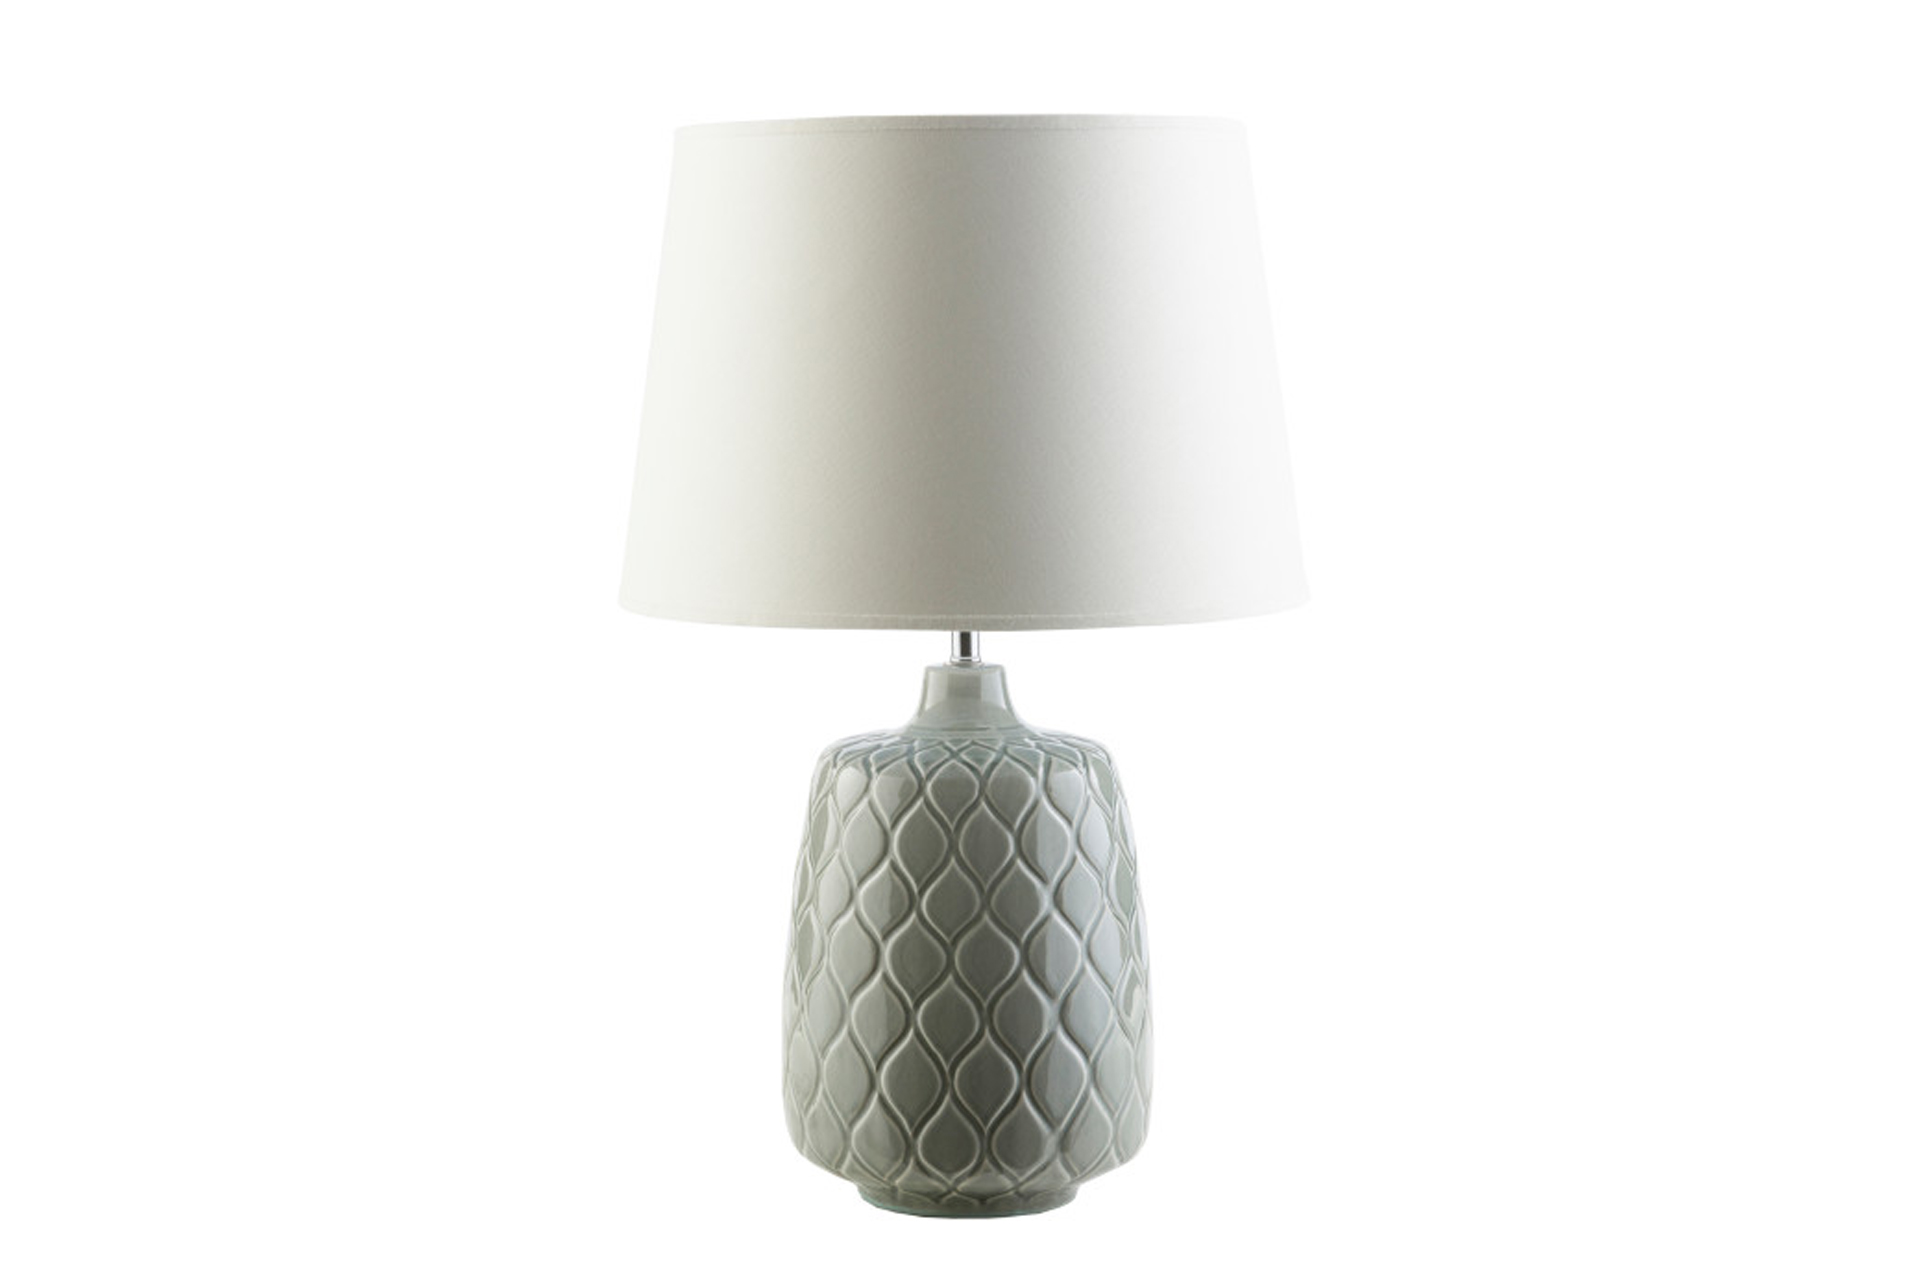 Table Lamp Clover Taupe (Qty: 1) Has Been Successfully Added To Your Cart.